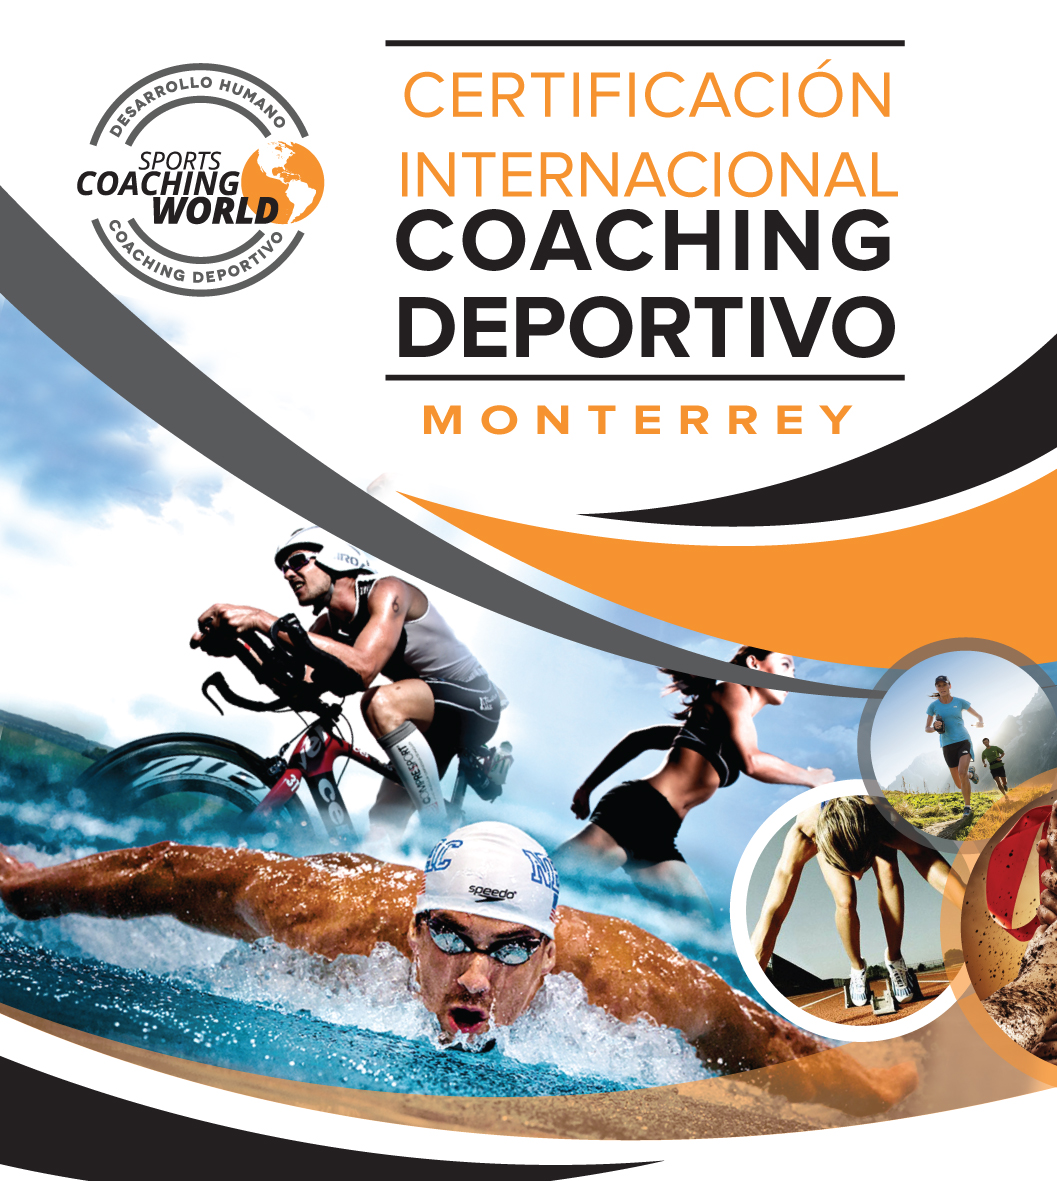 Certificación Internacional en Coaching Deportivo y Mental Training